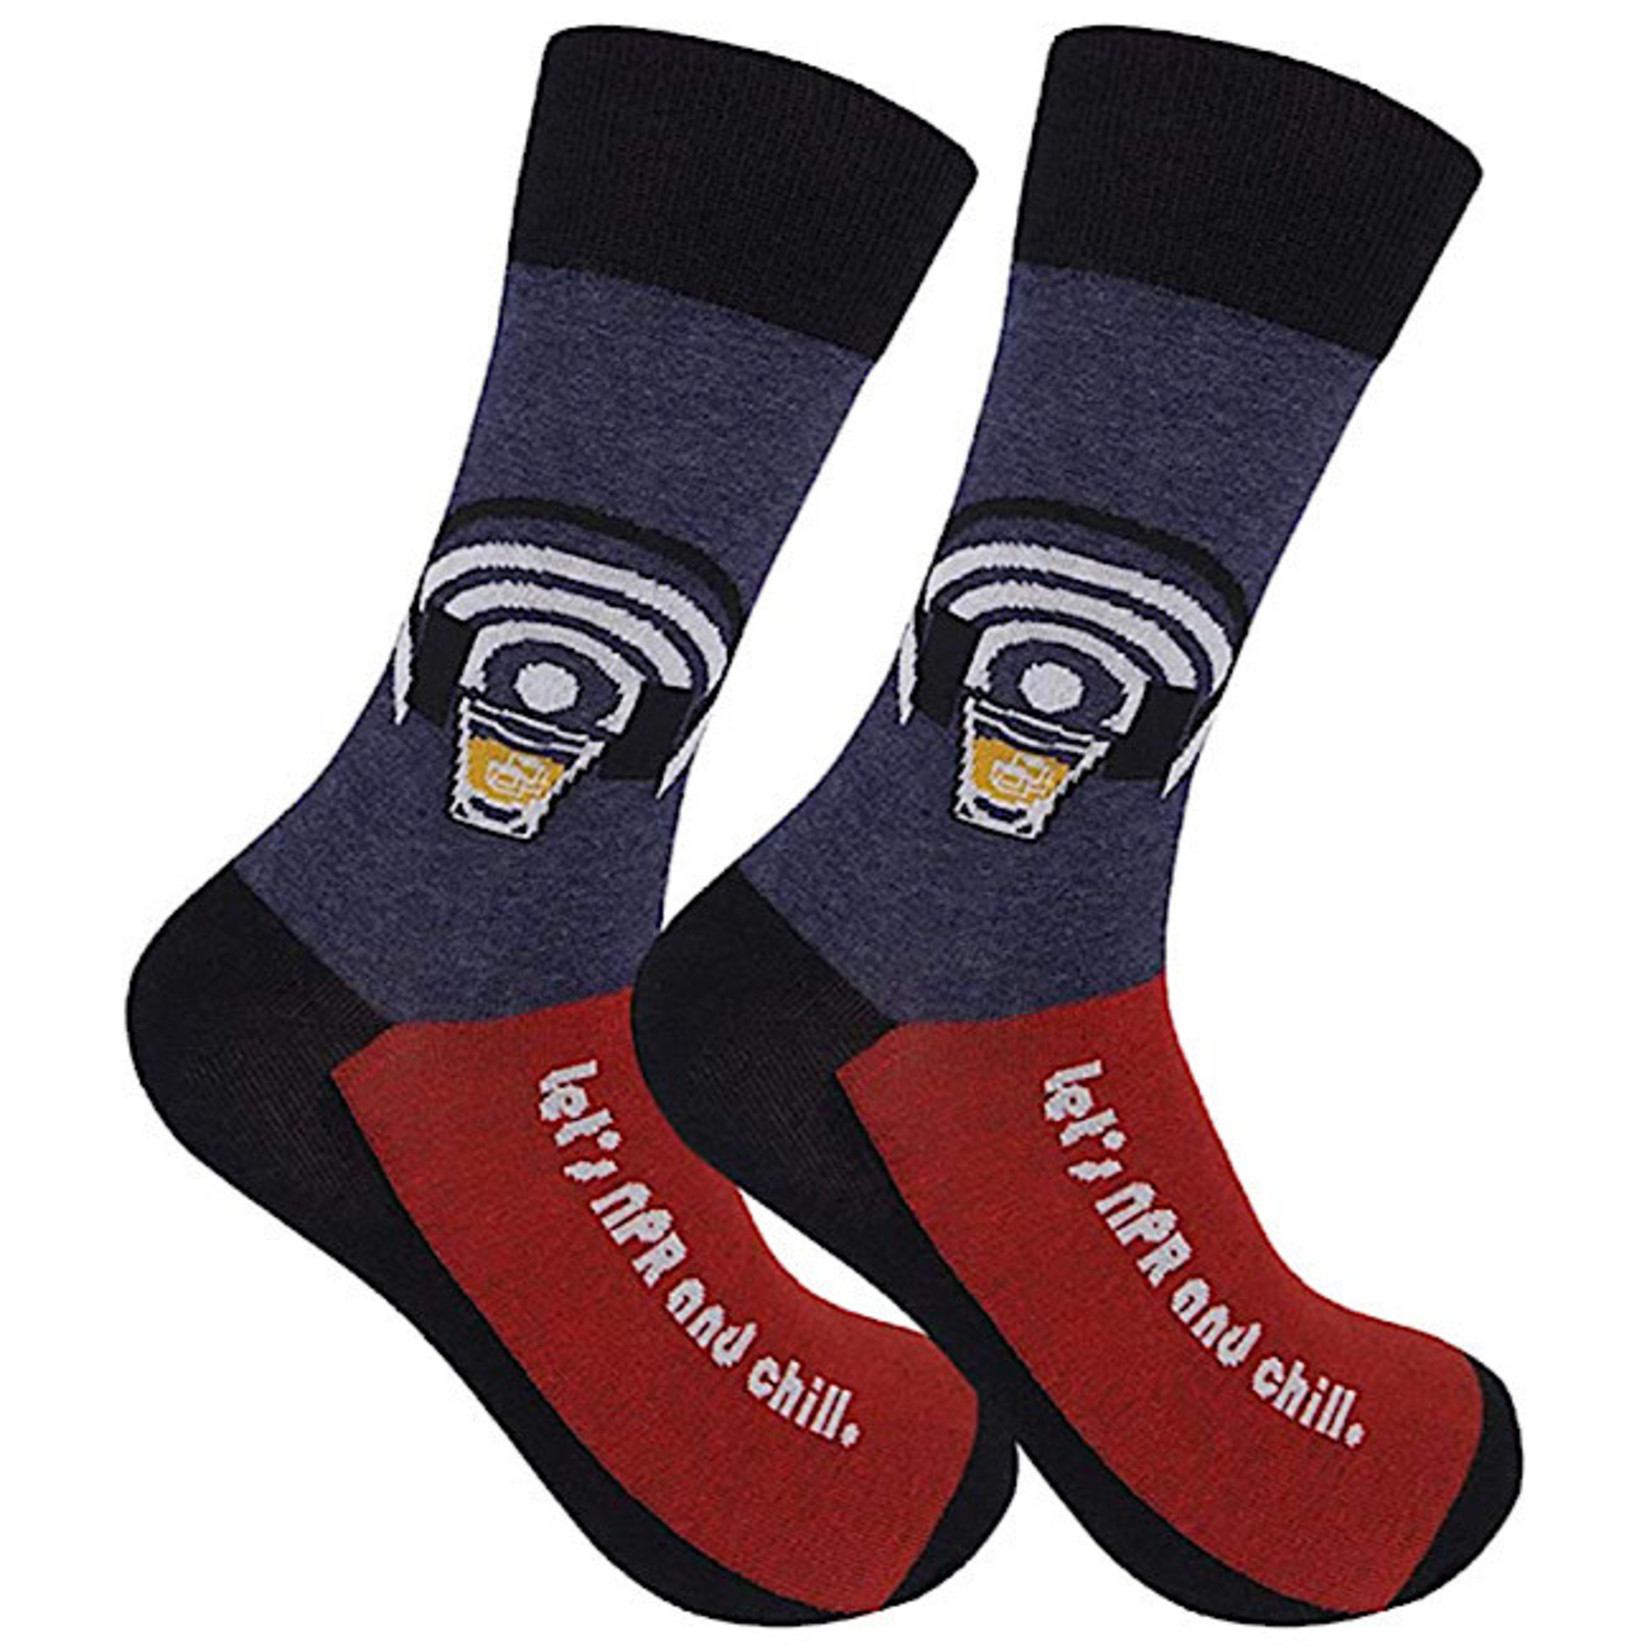 Socks (Unisex) - Lets NPR And Chill